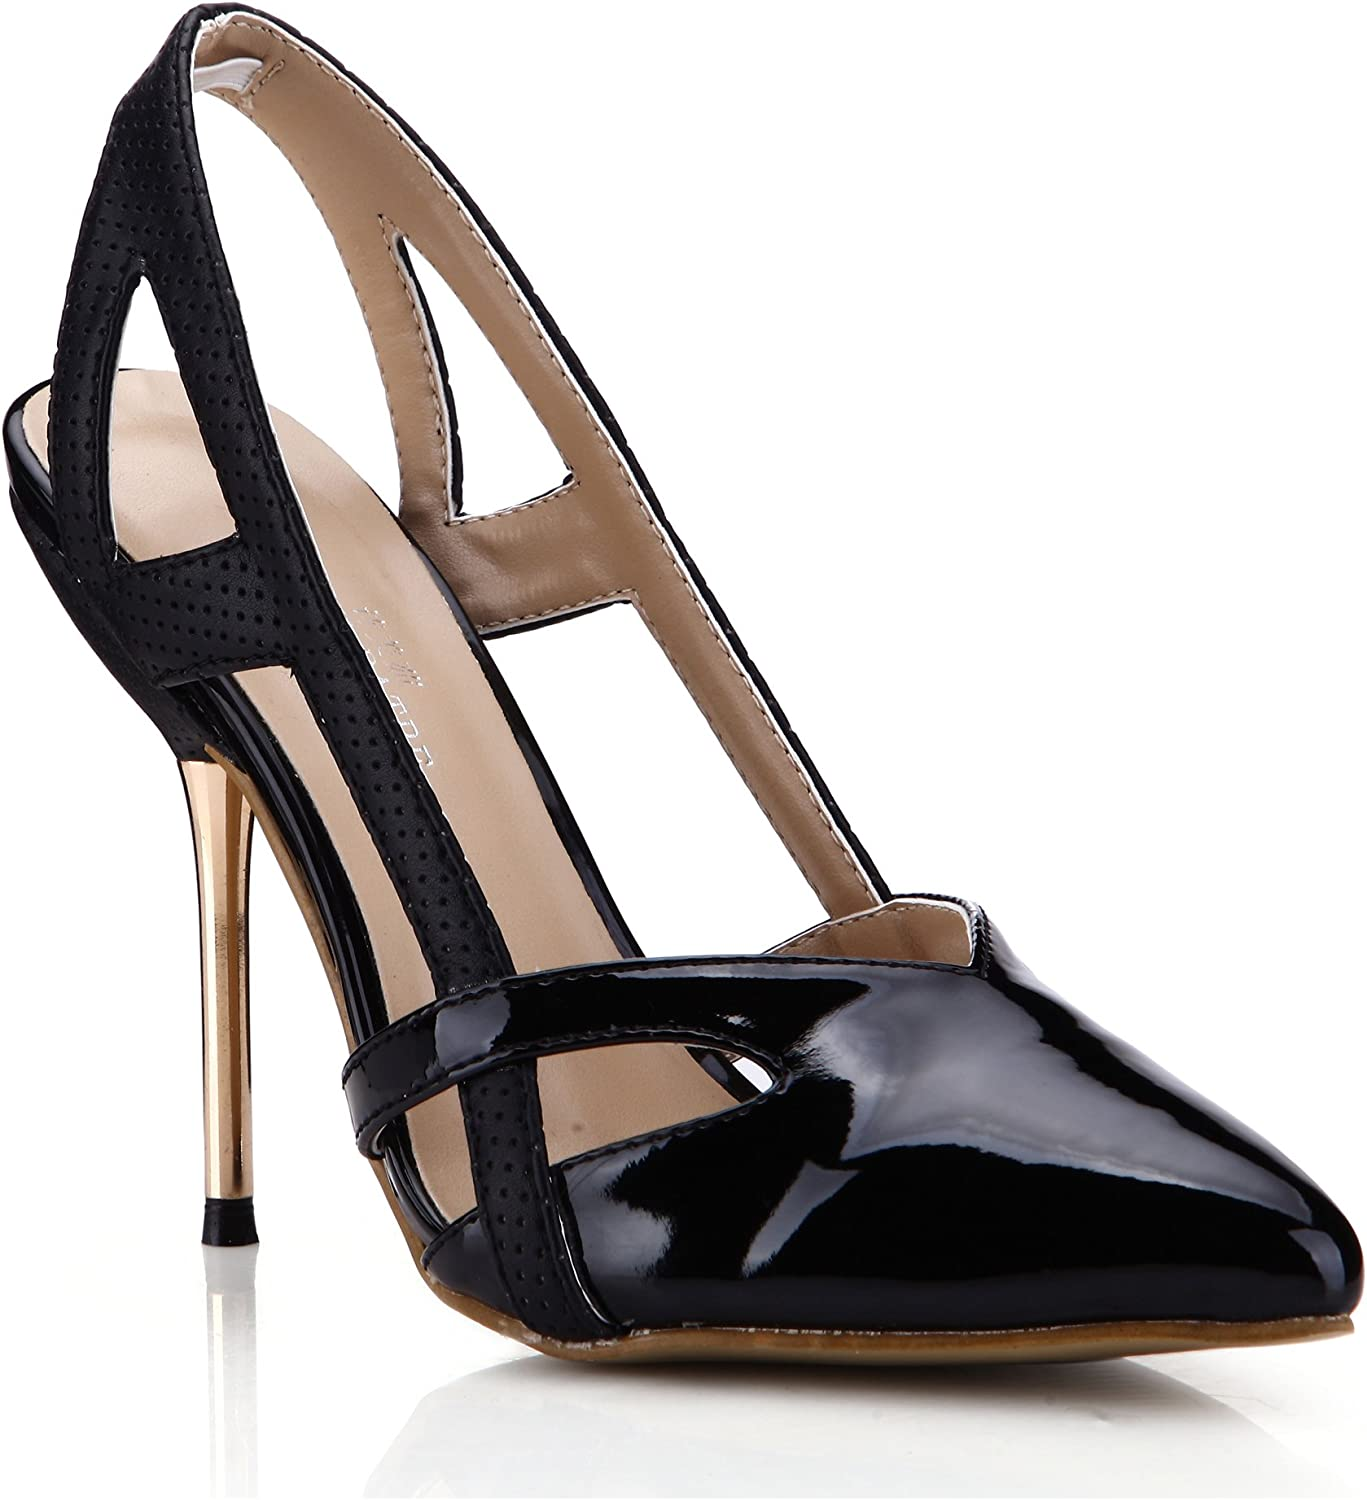 Dolphin Women's Black Hollow Point Toe Pumps High Heel Sandals Cocktail Party Stiletto SM00047